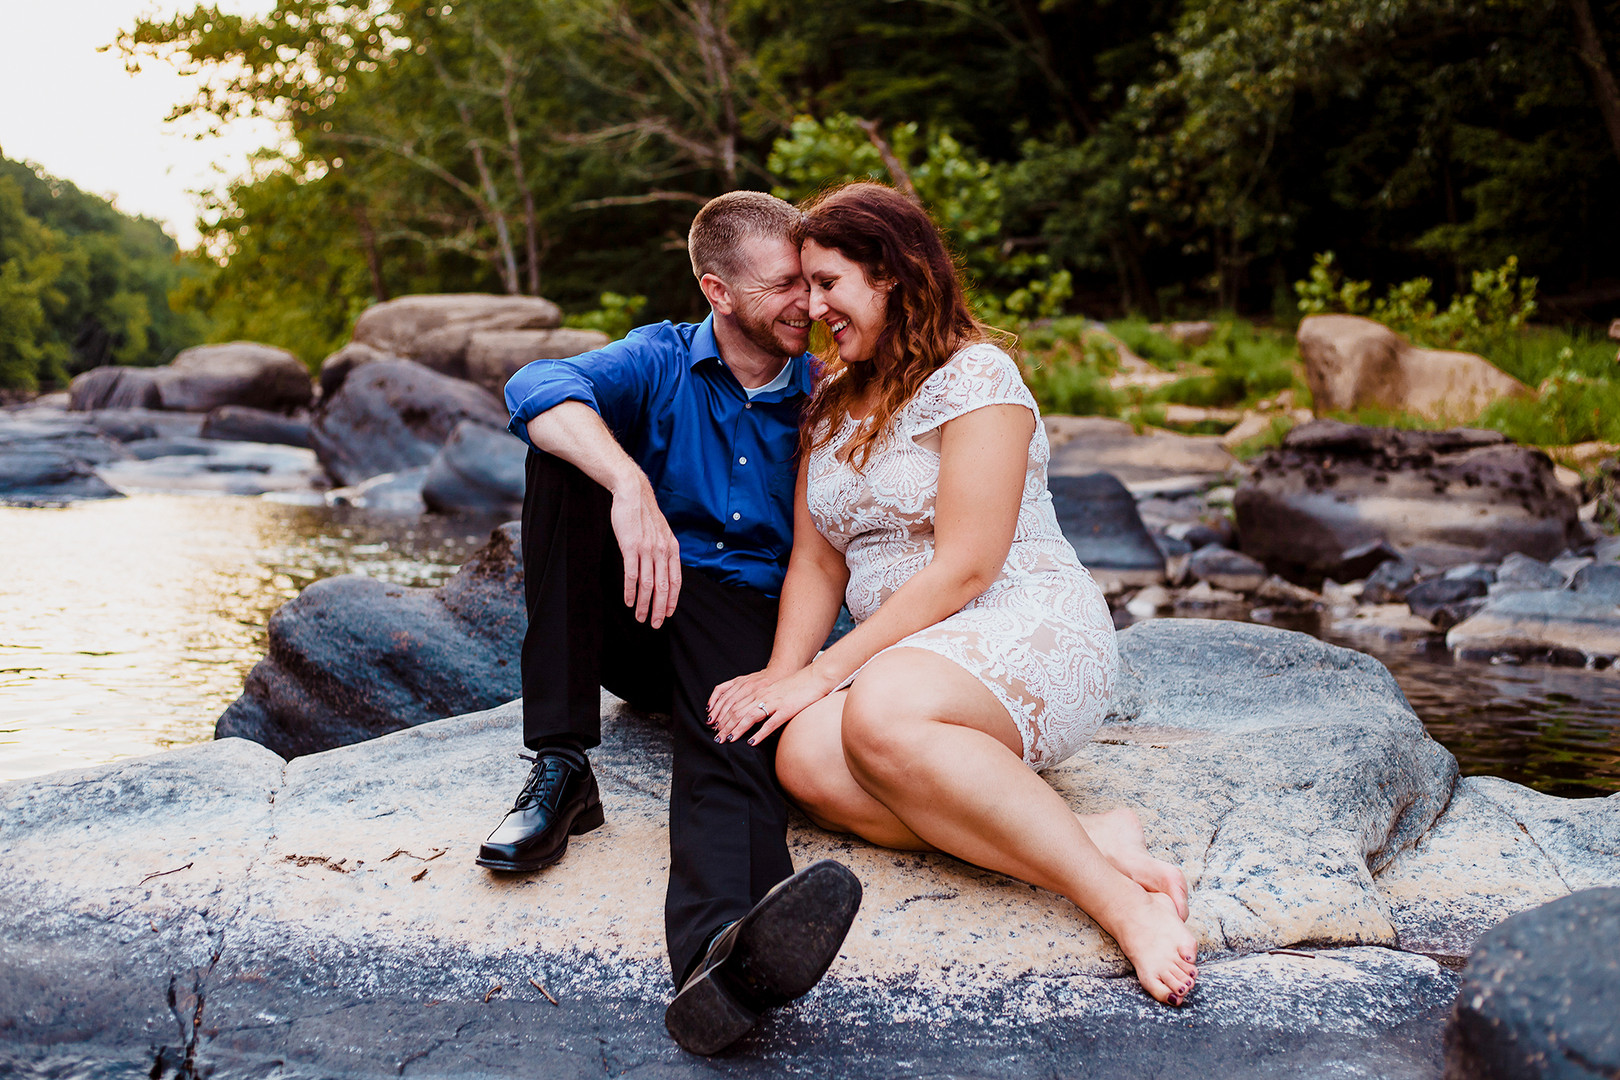 ValleyFallsEngagement-FairmontWV-CynDavi